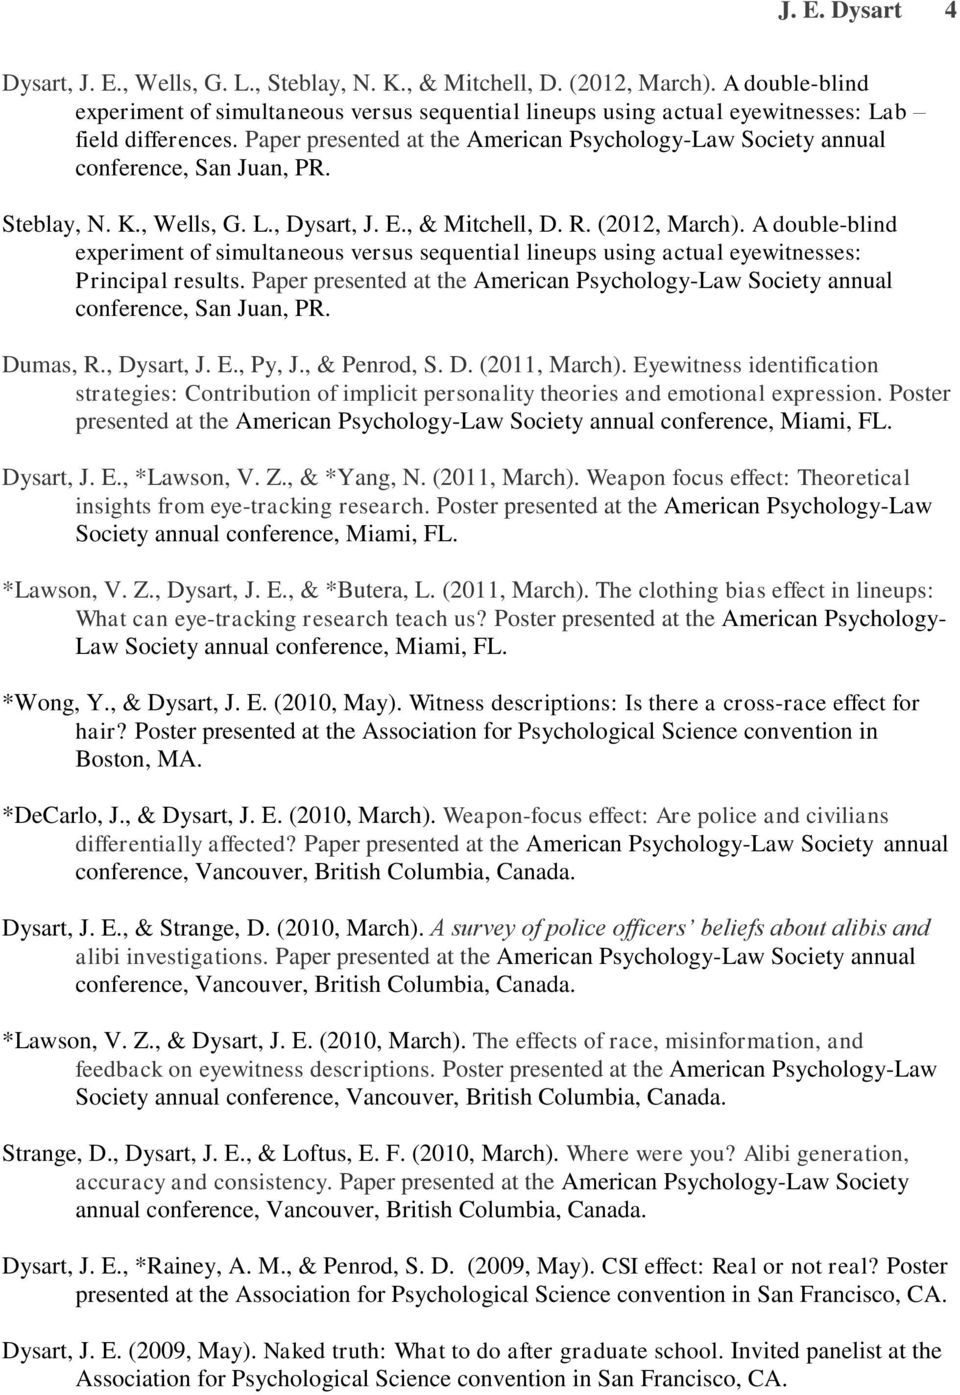 Paper presented at the American Psychology-Law Society annual conference, San Juan, PR. Steblay, N. K., Wells, G. L., Dysart, J. E., & Mitchell, D. R. (2012, March).